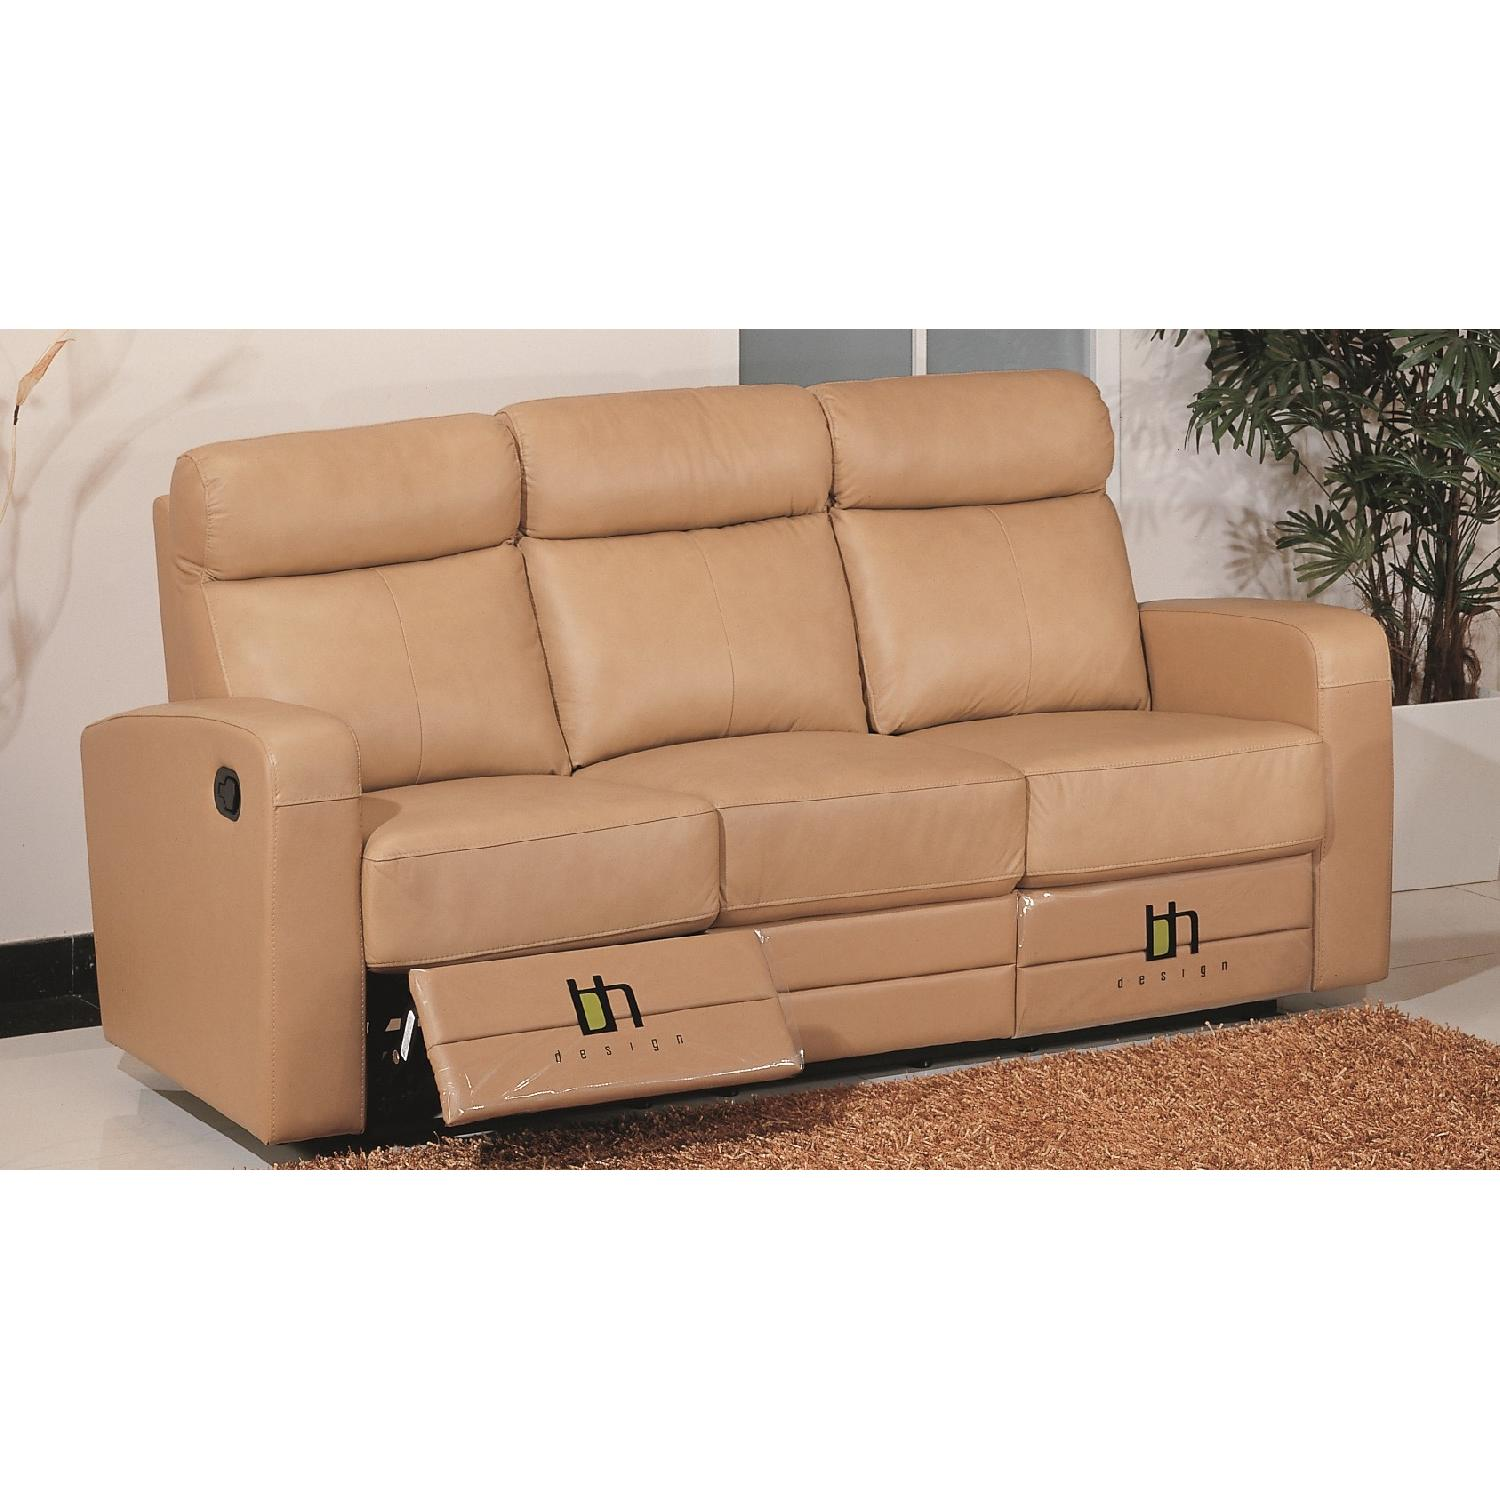 ... Apartment Size Recliner Sofa In Taupe Color Top Grain Leathe 1 ...